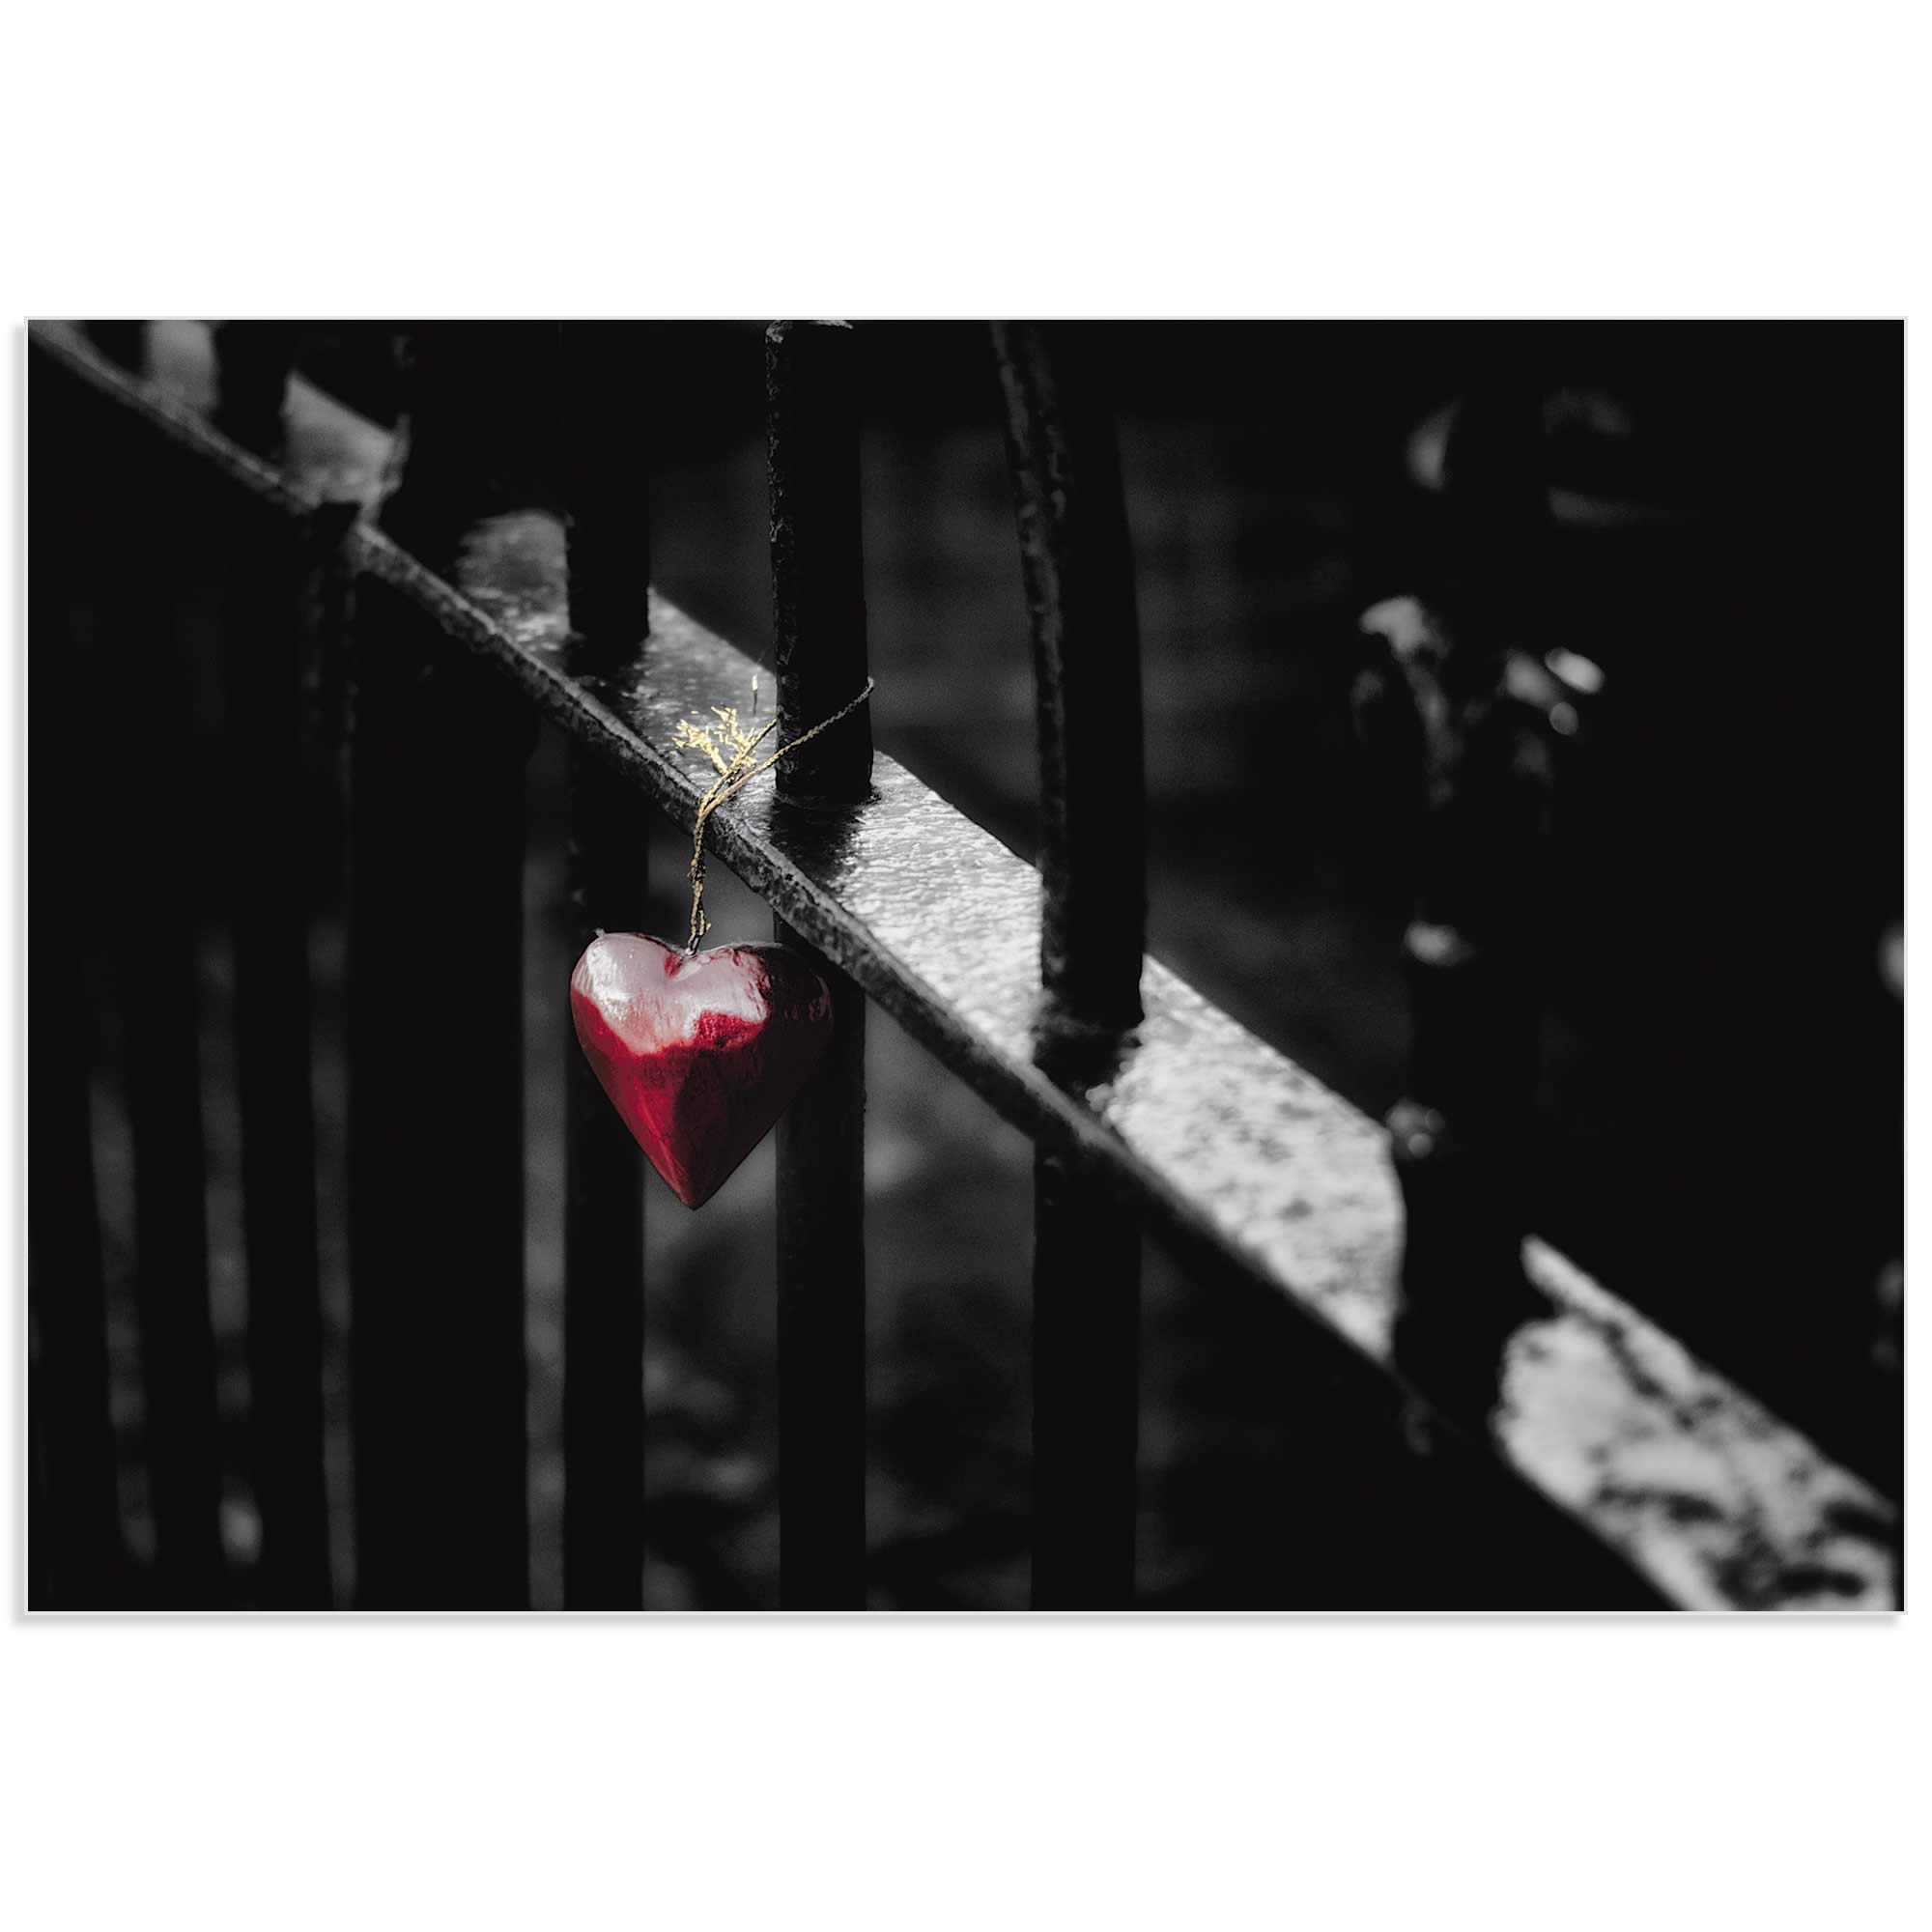 Lonely Heart by Richard Bland - Emotional Art on Metal or Acrylic - Alternate View 2